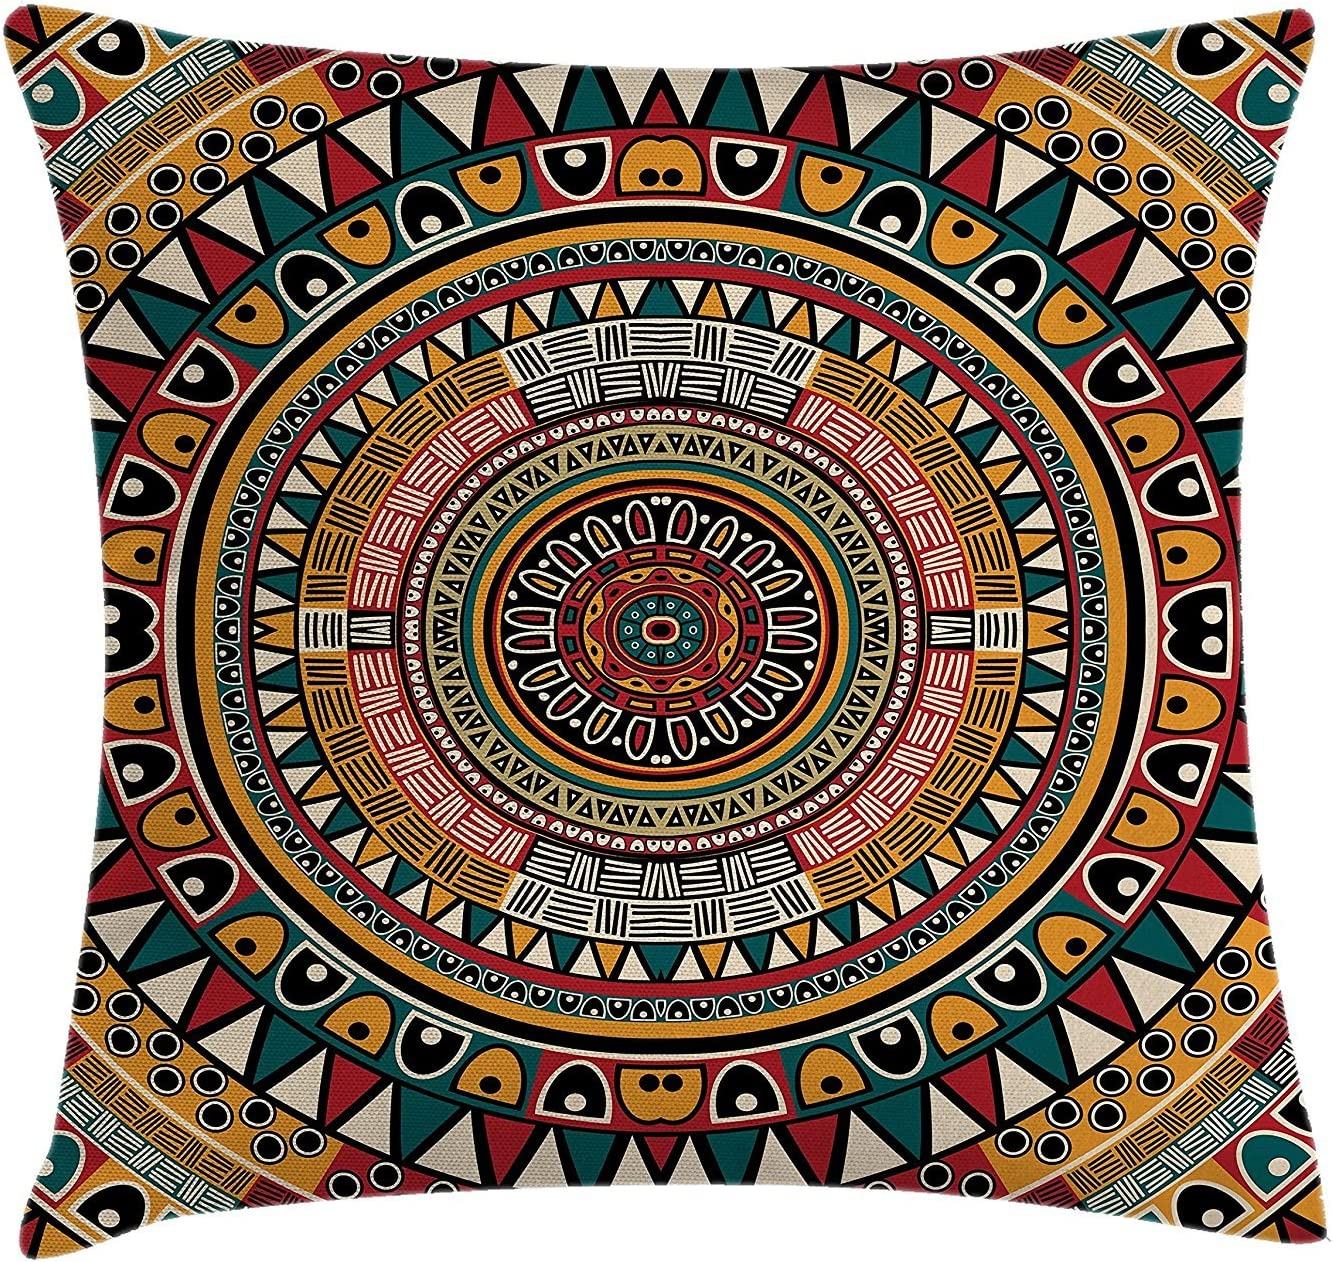 Amazon Com Ashasds Tribal African Folkloric Tribe Round Pattern With Ethnic Colors Aztec Art Throw Pillow Covers For Home Indoor Friendly Comfortable Cushion Standard Size 24x24 In Home Kitchen